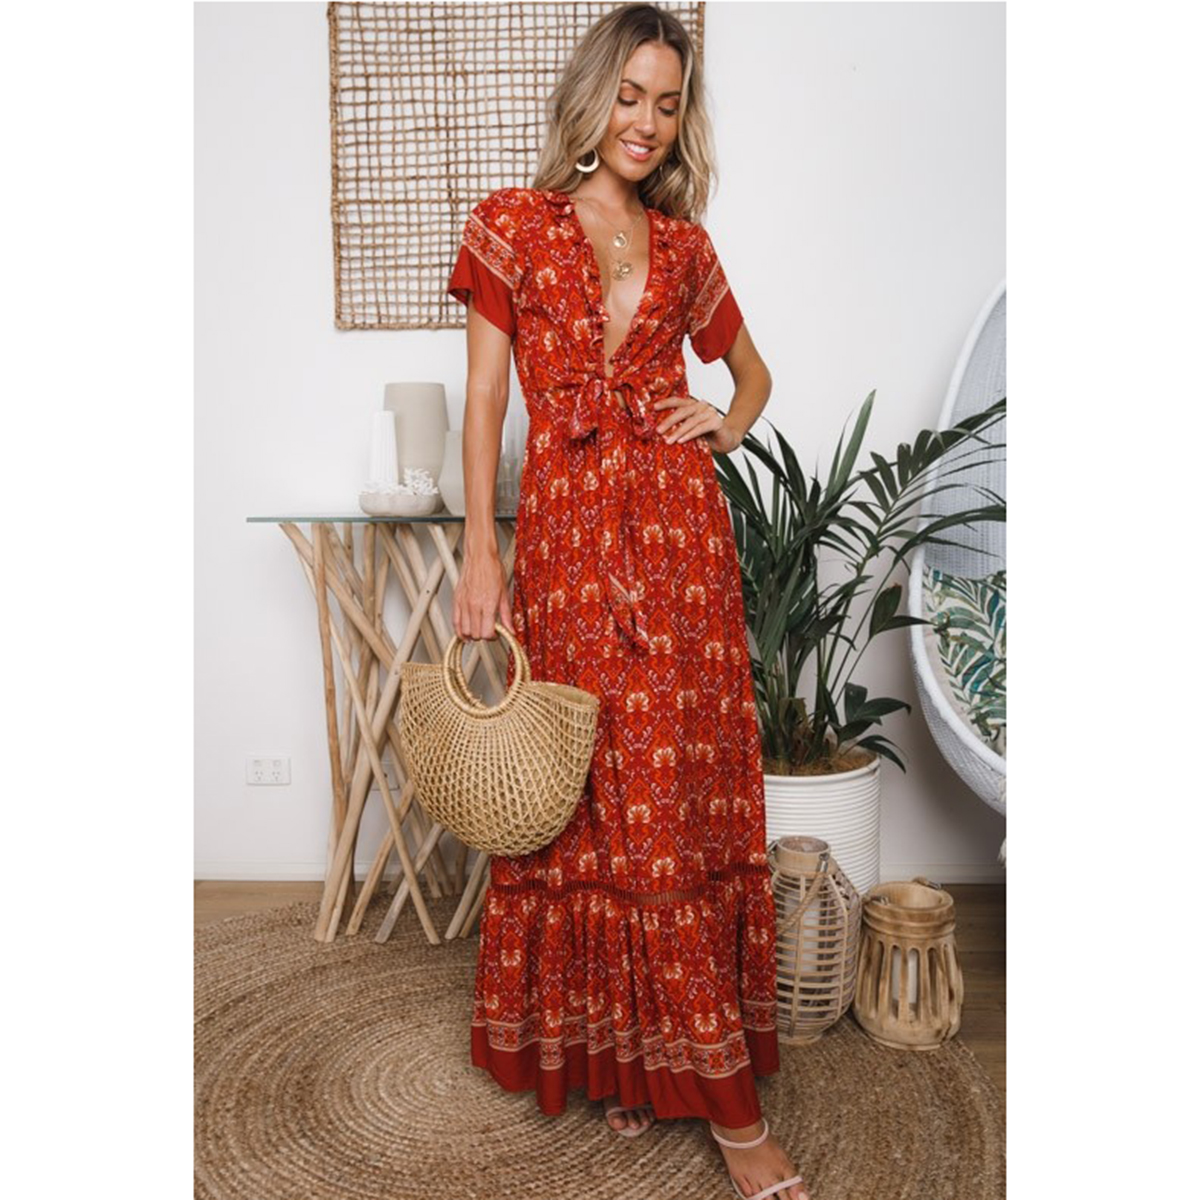 a7863a6f19 Detail Feedback Questions about Jastie Summer Floral Print Dress Elastic  waist Casual Maxi Dresses V Neck with Tie Sexy Women Dress Long Boho Beach  Dresses ...